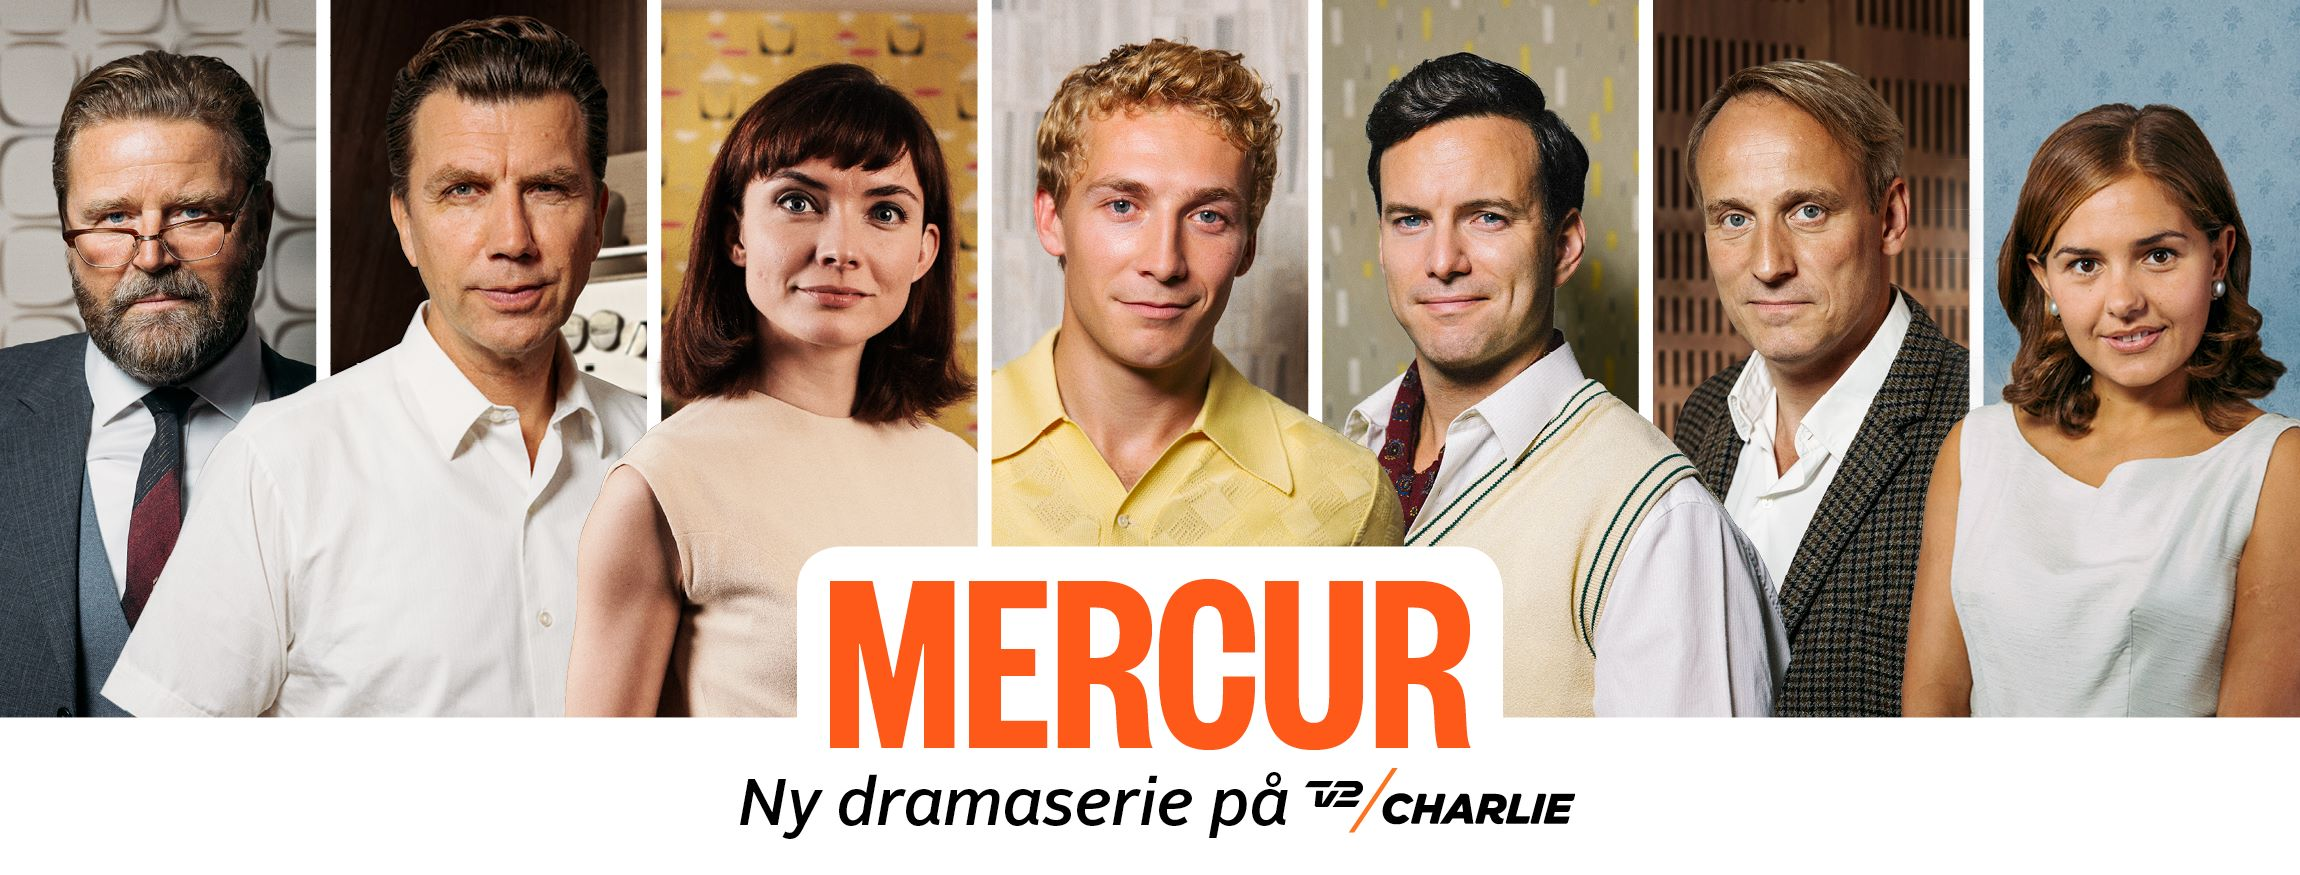 Mercur TV 2 Charlie TV 2 Play